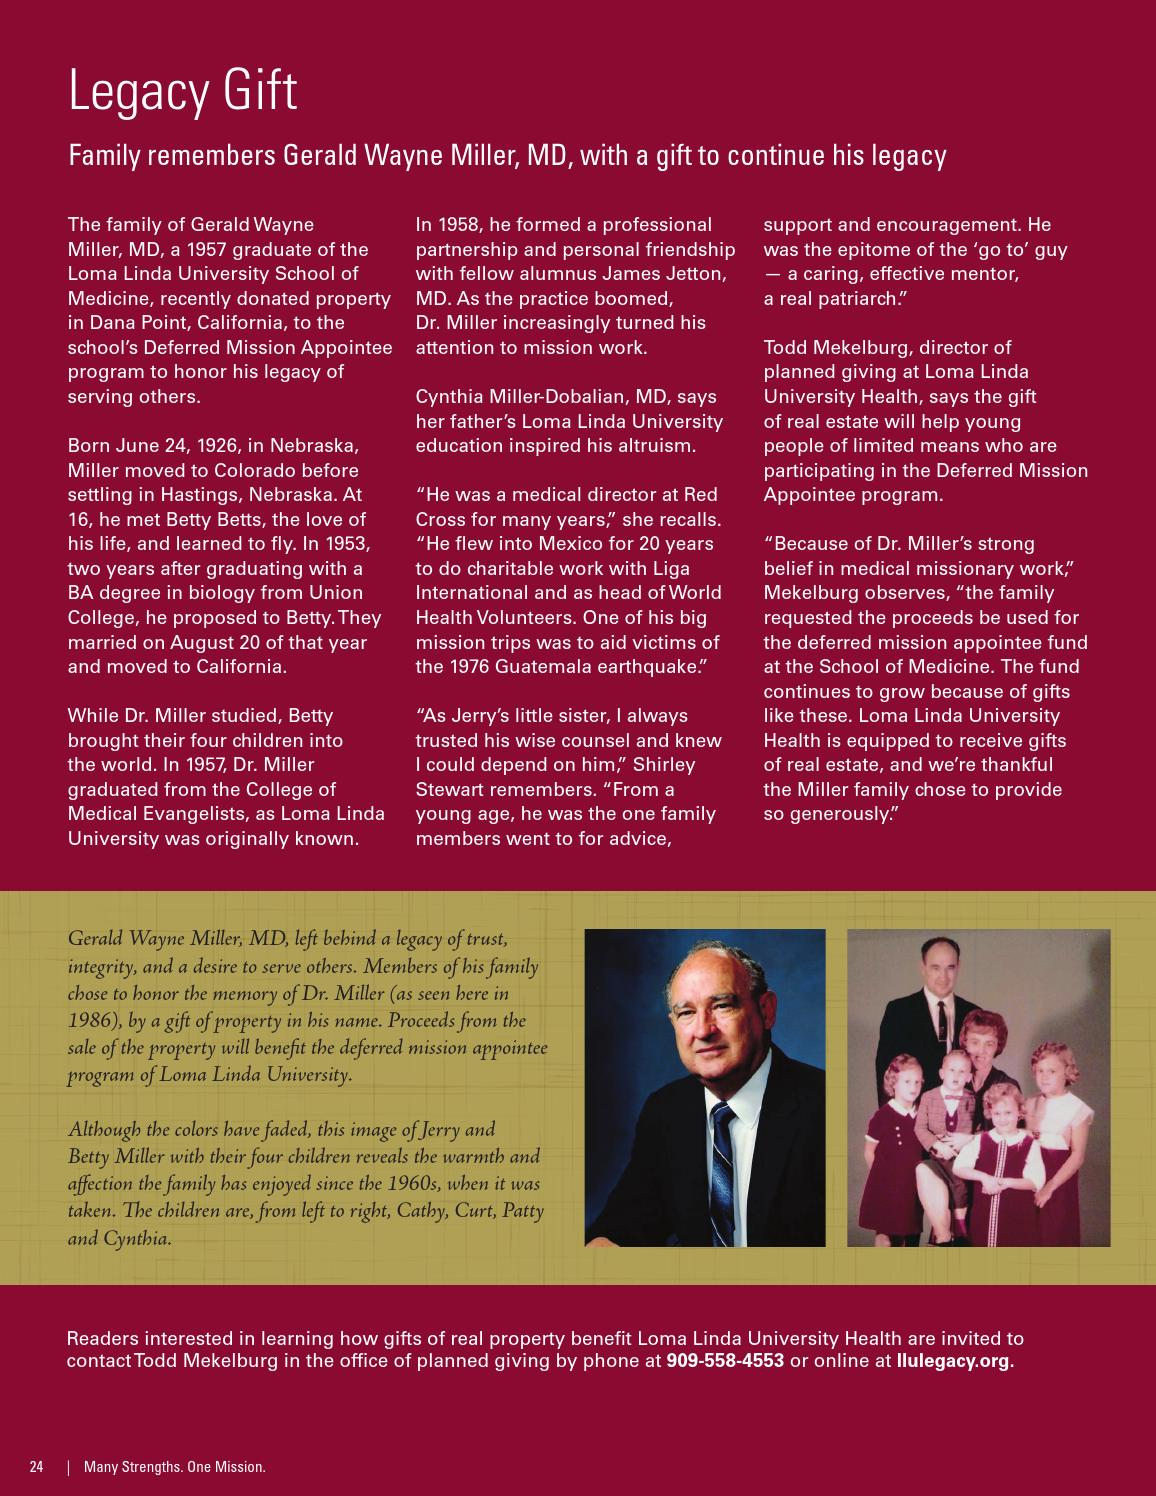 2013 LLUH Annual Report by Loma Linda University Health - issuu